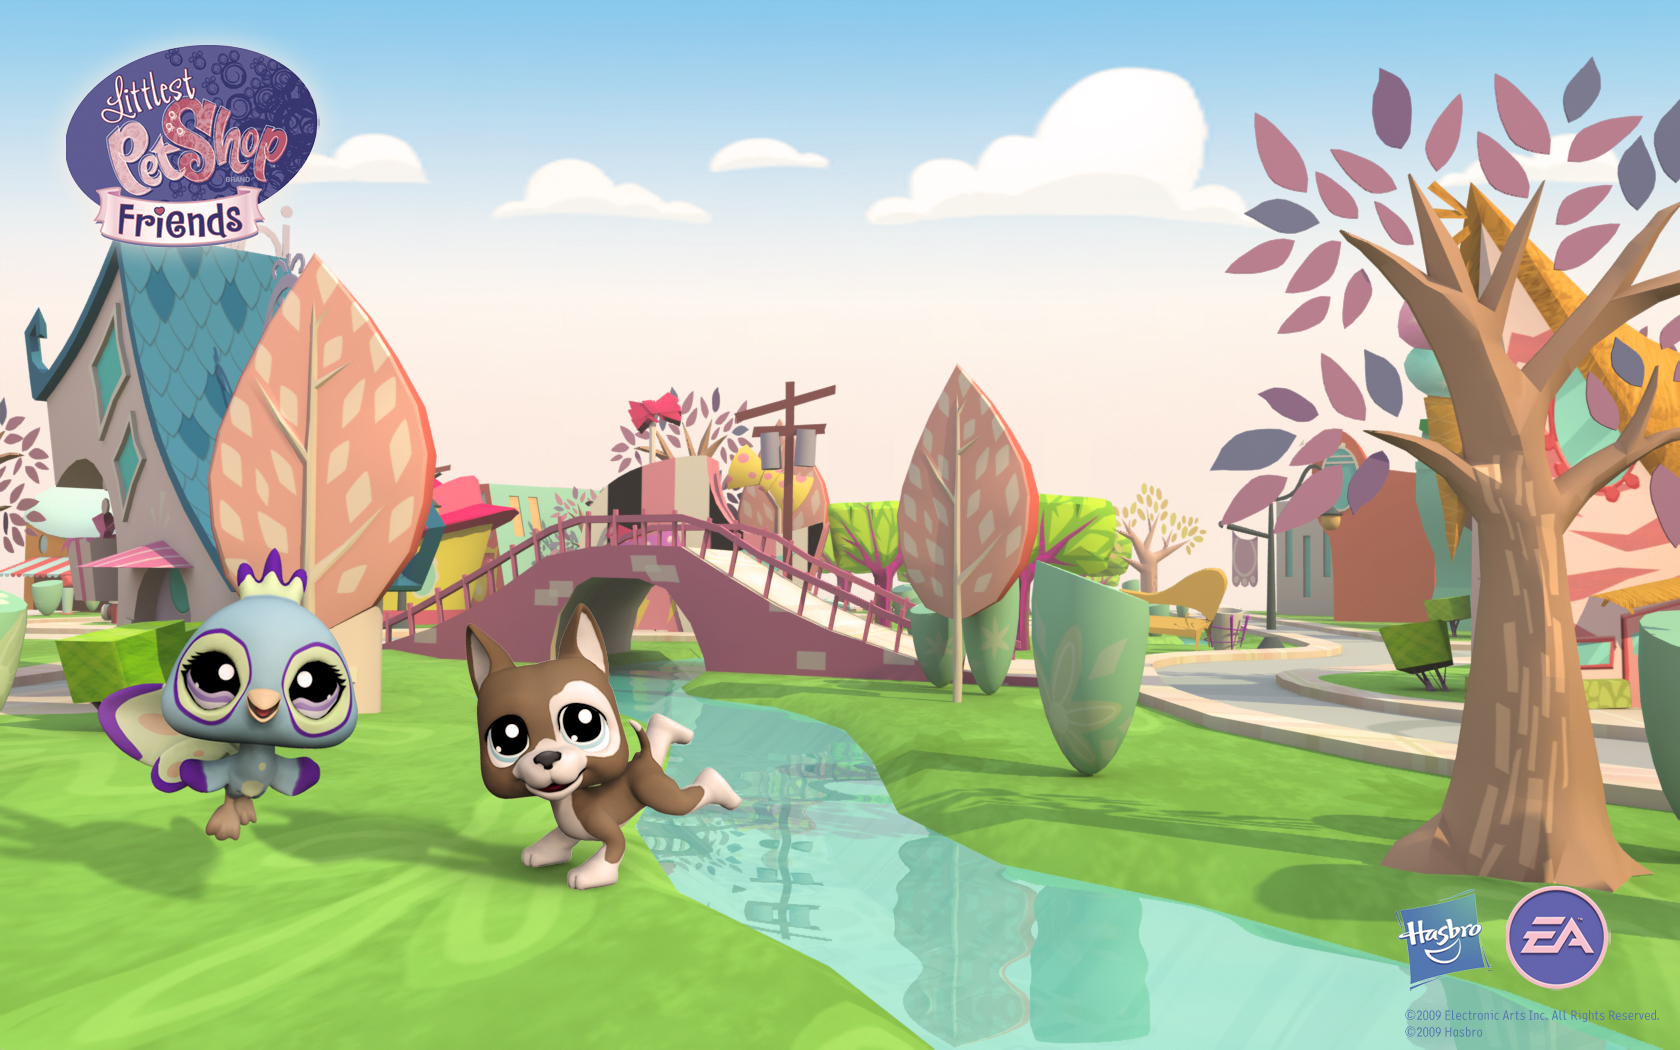 Download Littlest Pet Shop Friends   City Wallpaper Online 1680x1050